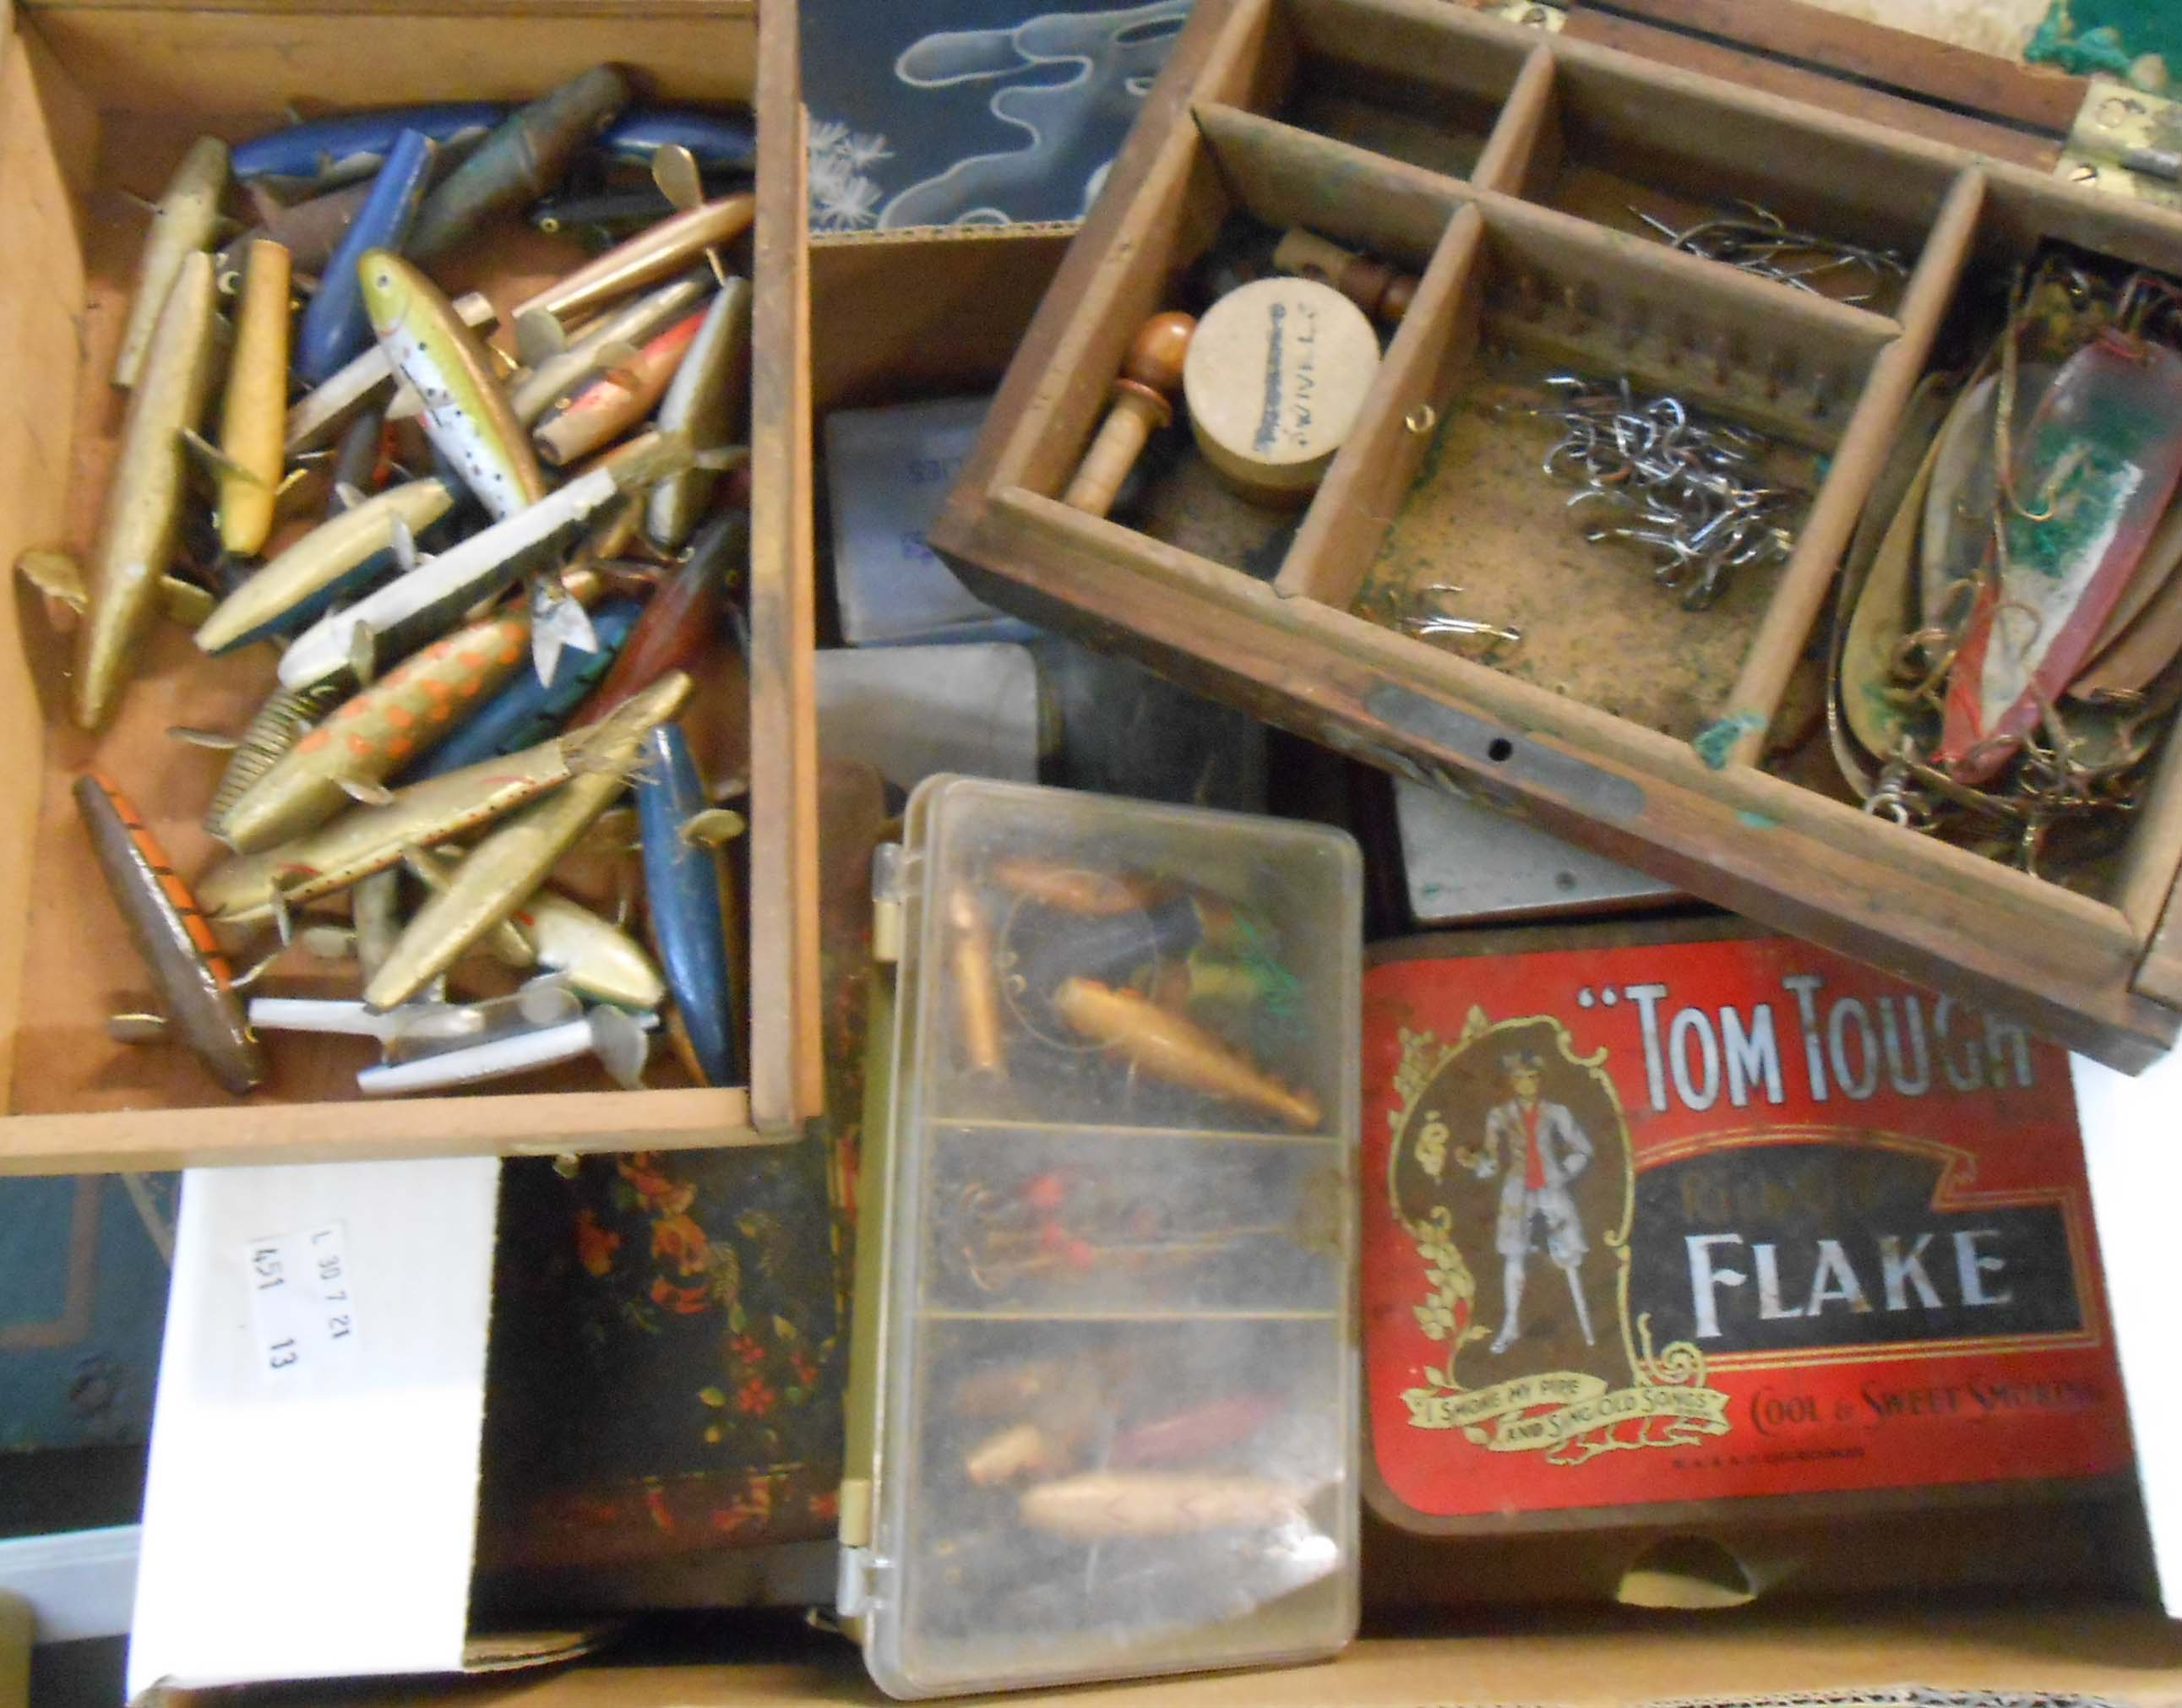 A box containing a collection of vintage fishing lures, spinners and spoons, etc.